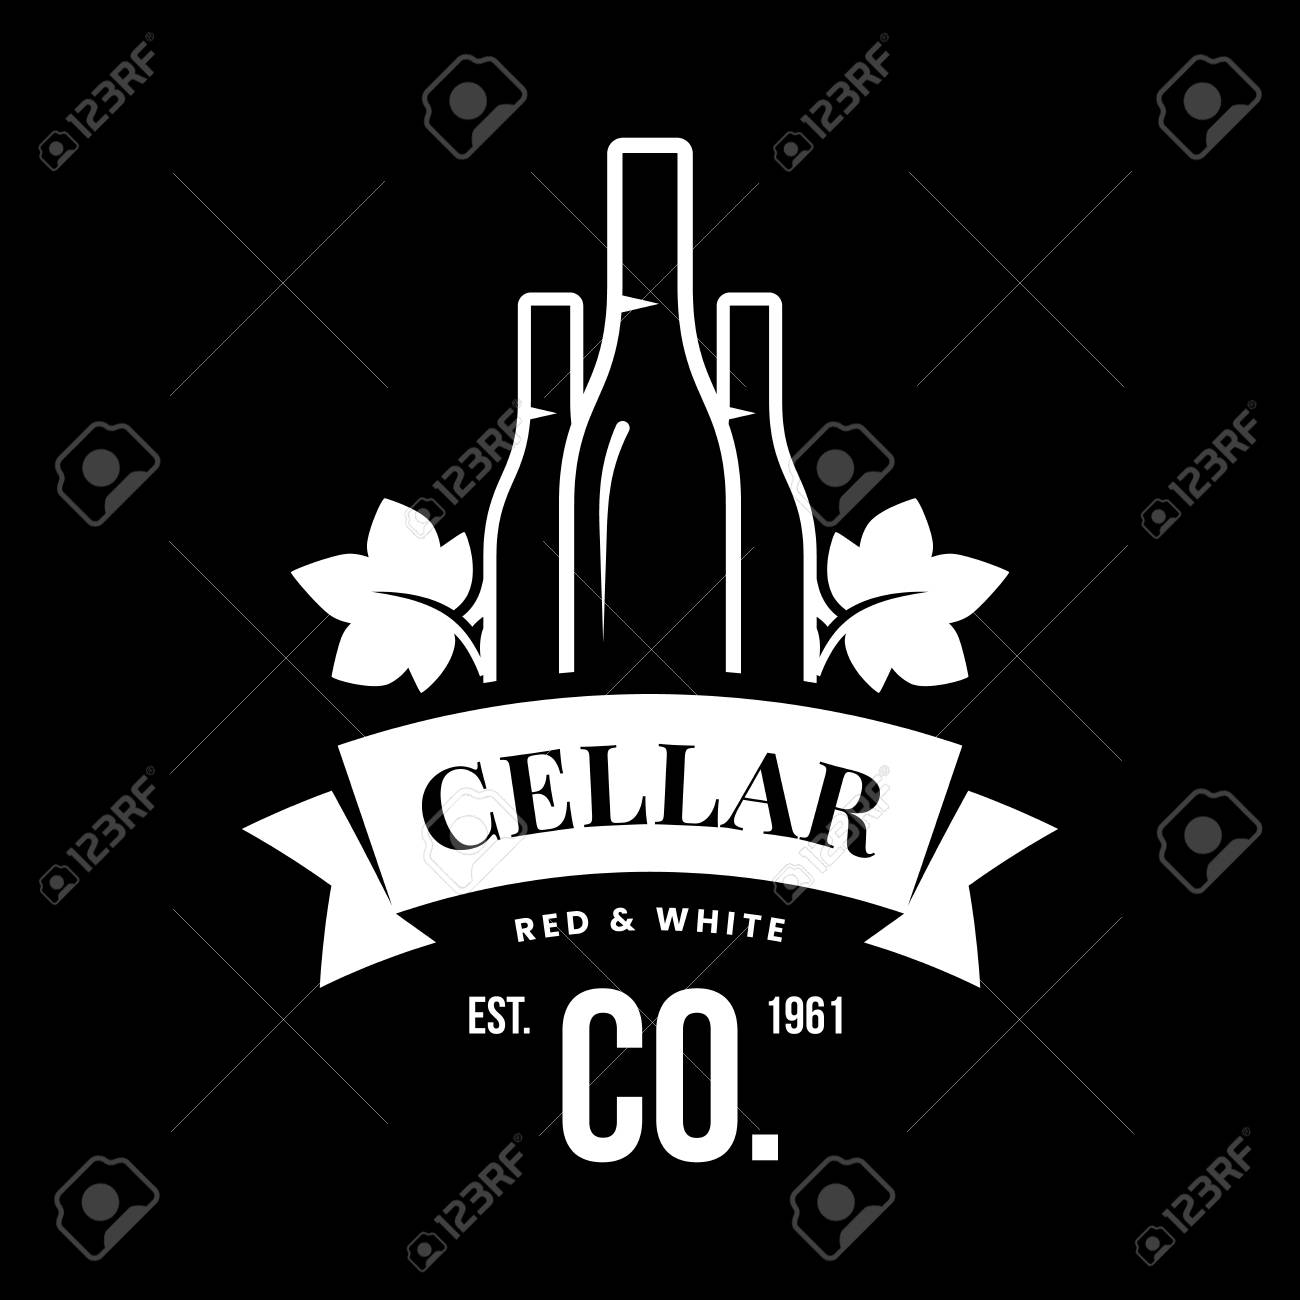 Modern wine vector logo sign for tavern, restaurant, house, shop, store, club and cellar isolated on black background. Premium quality vinery logotype illustration. Fashion brand badge design template. - 126498938